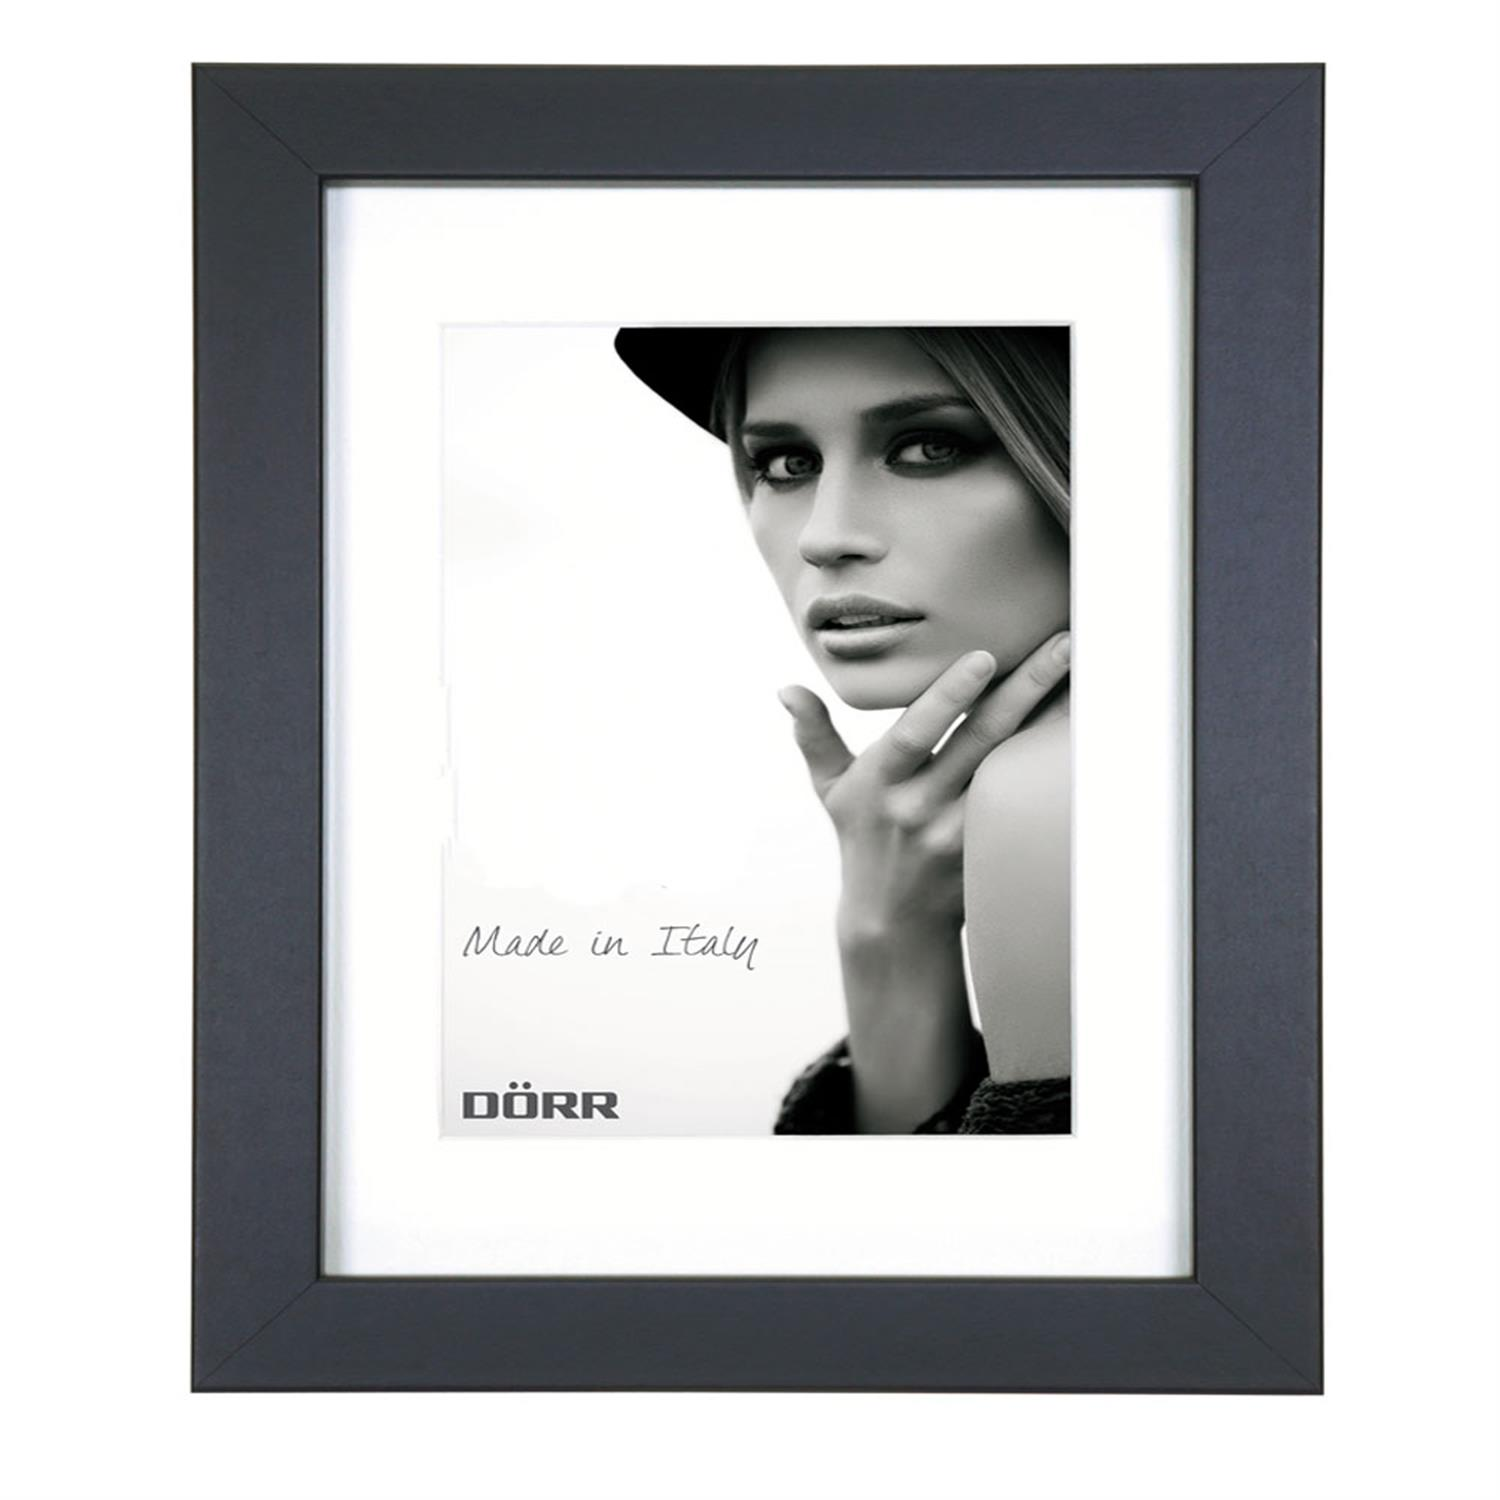 Dorr Bloc Black 20x16 inch Wood Photo Frame with 16x12 inch insert